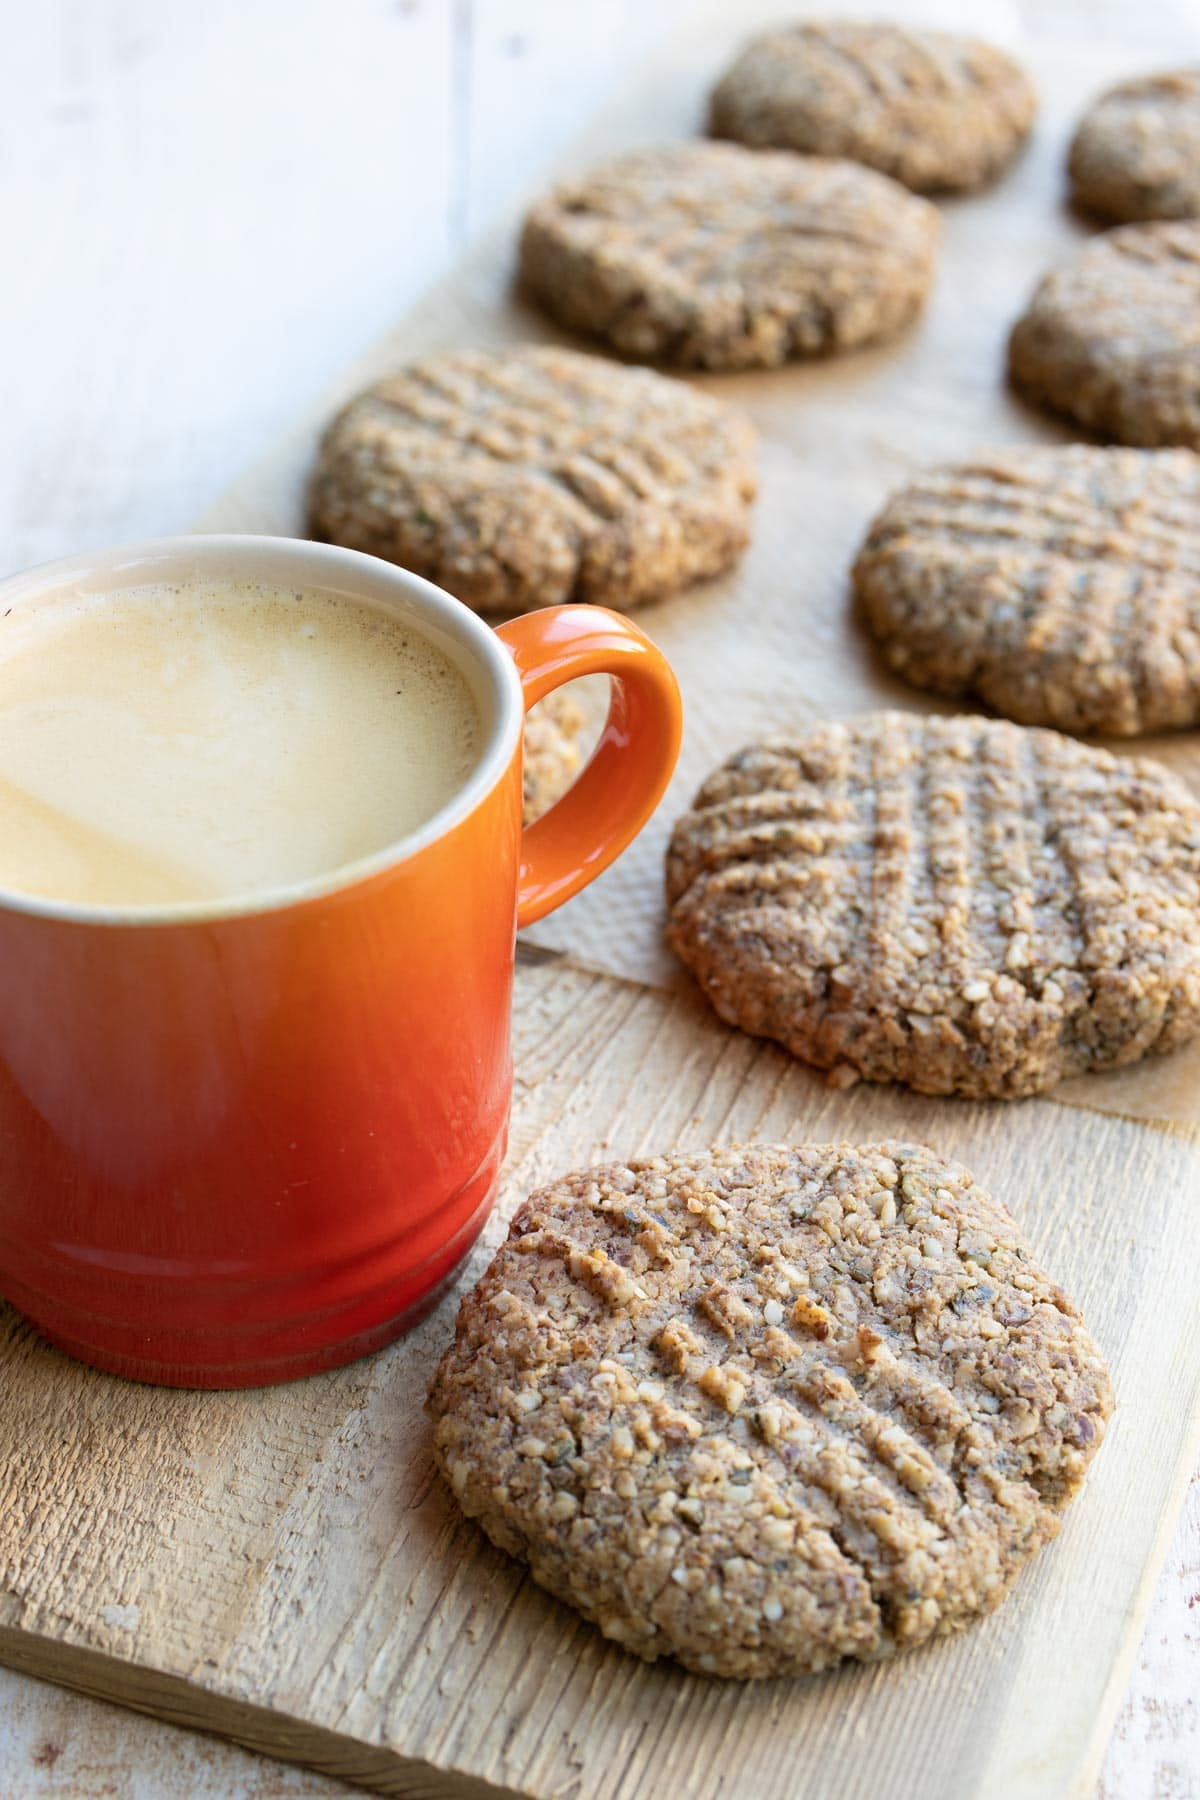 low carb breakfast cookies on a wooden board with a cup of coffee